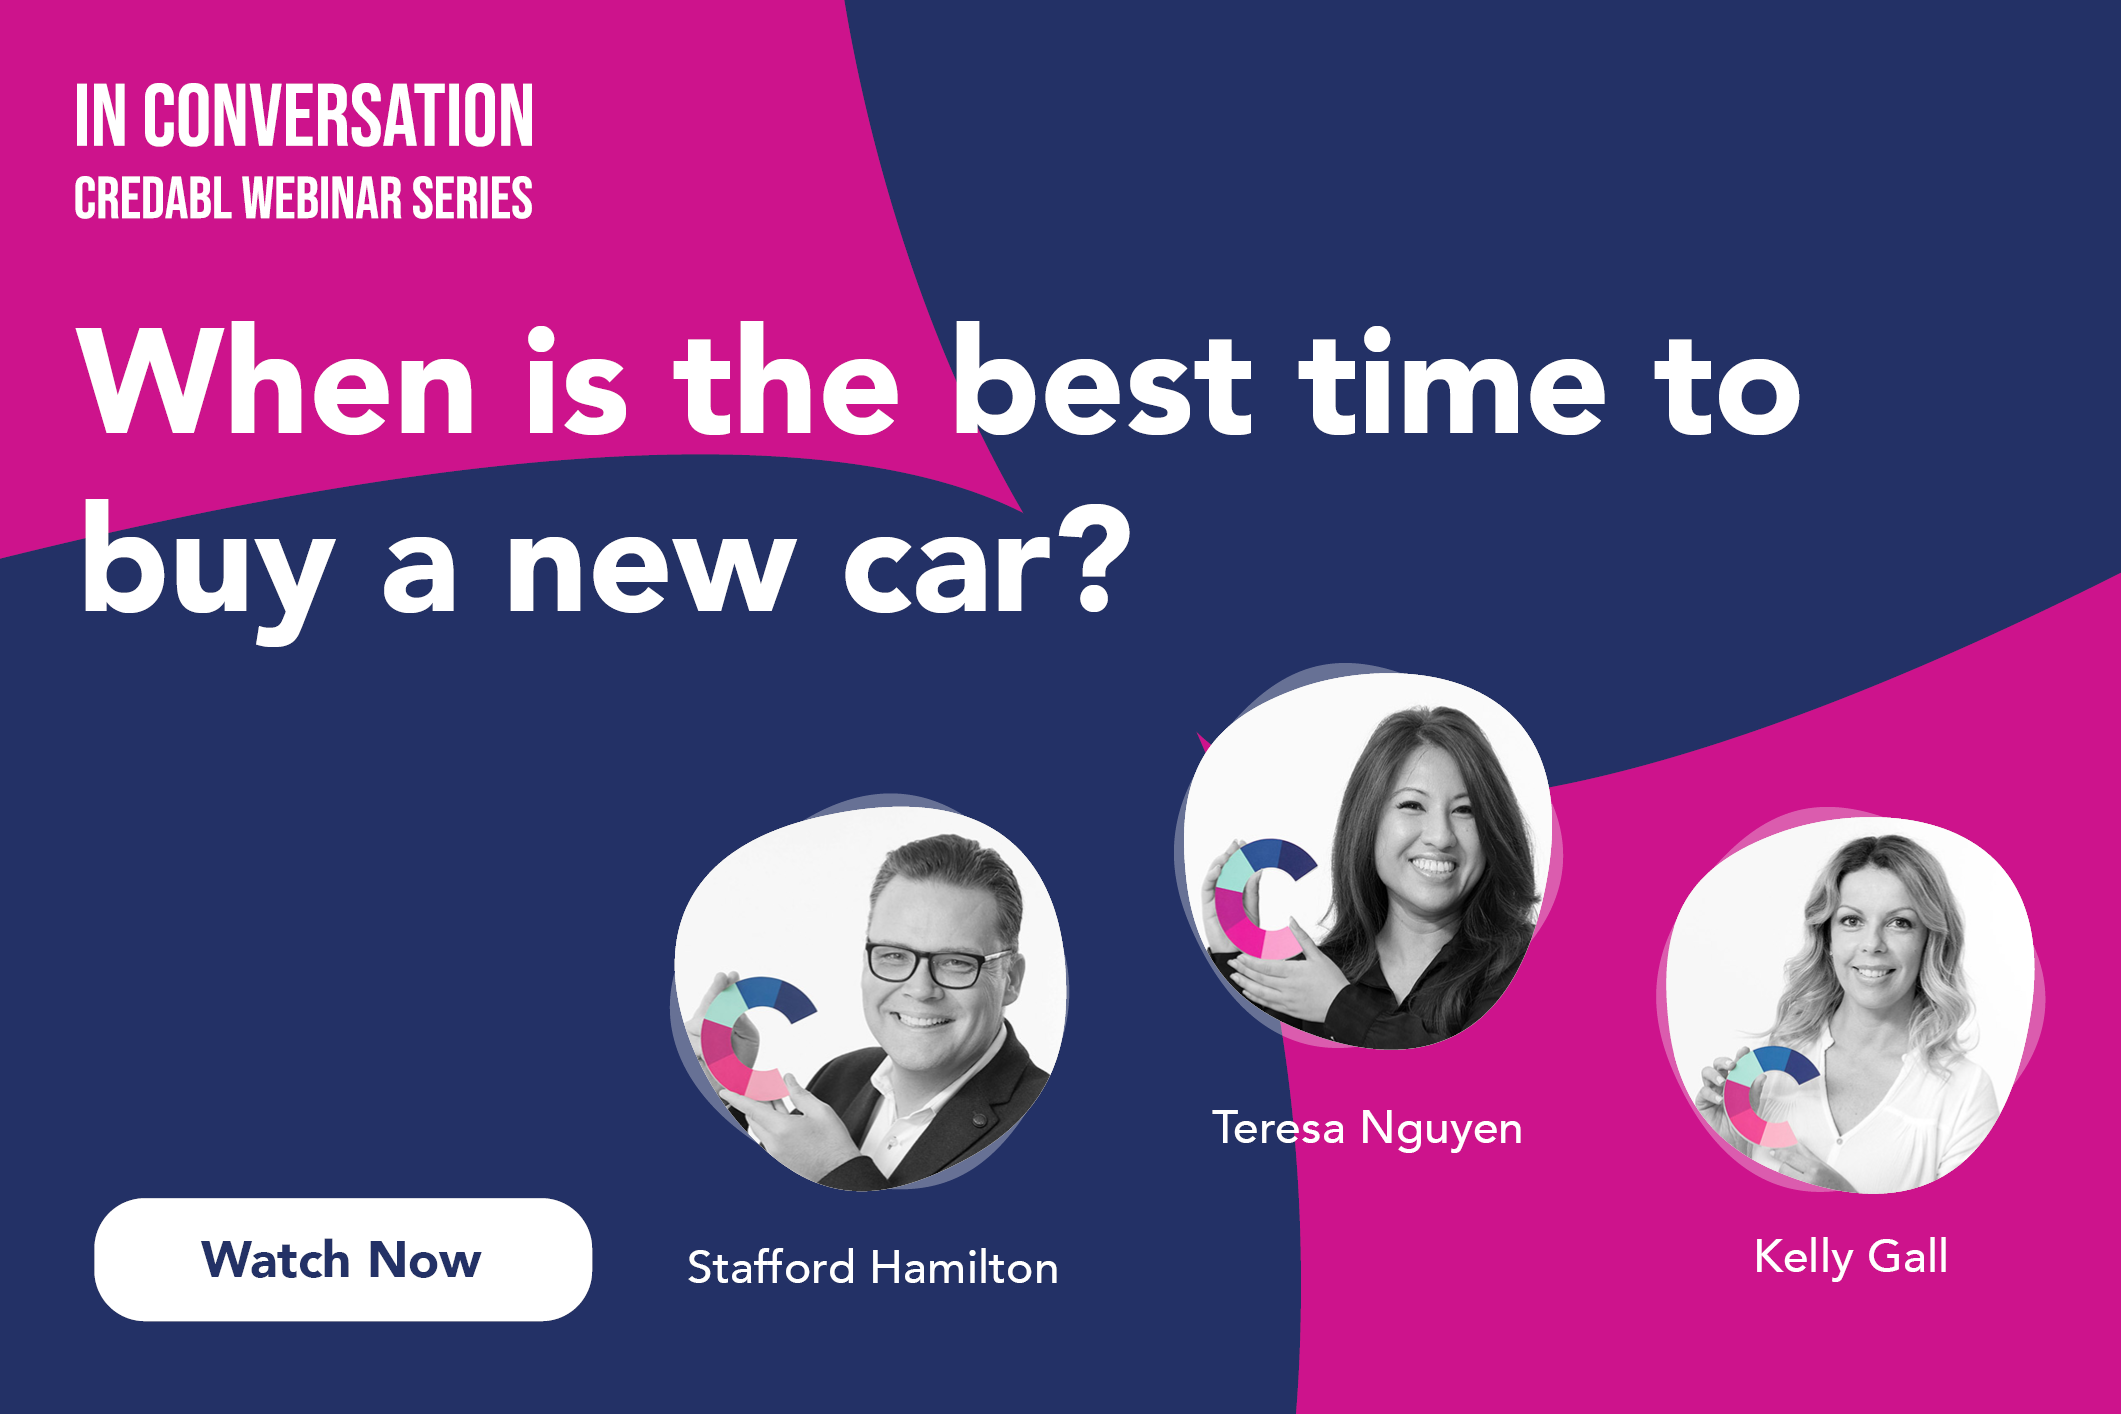 When is the best time to buy a new car? Image